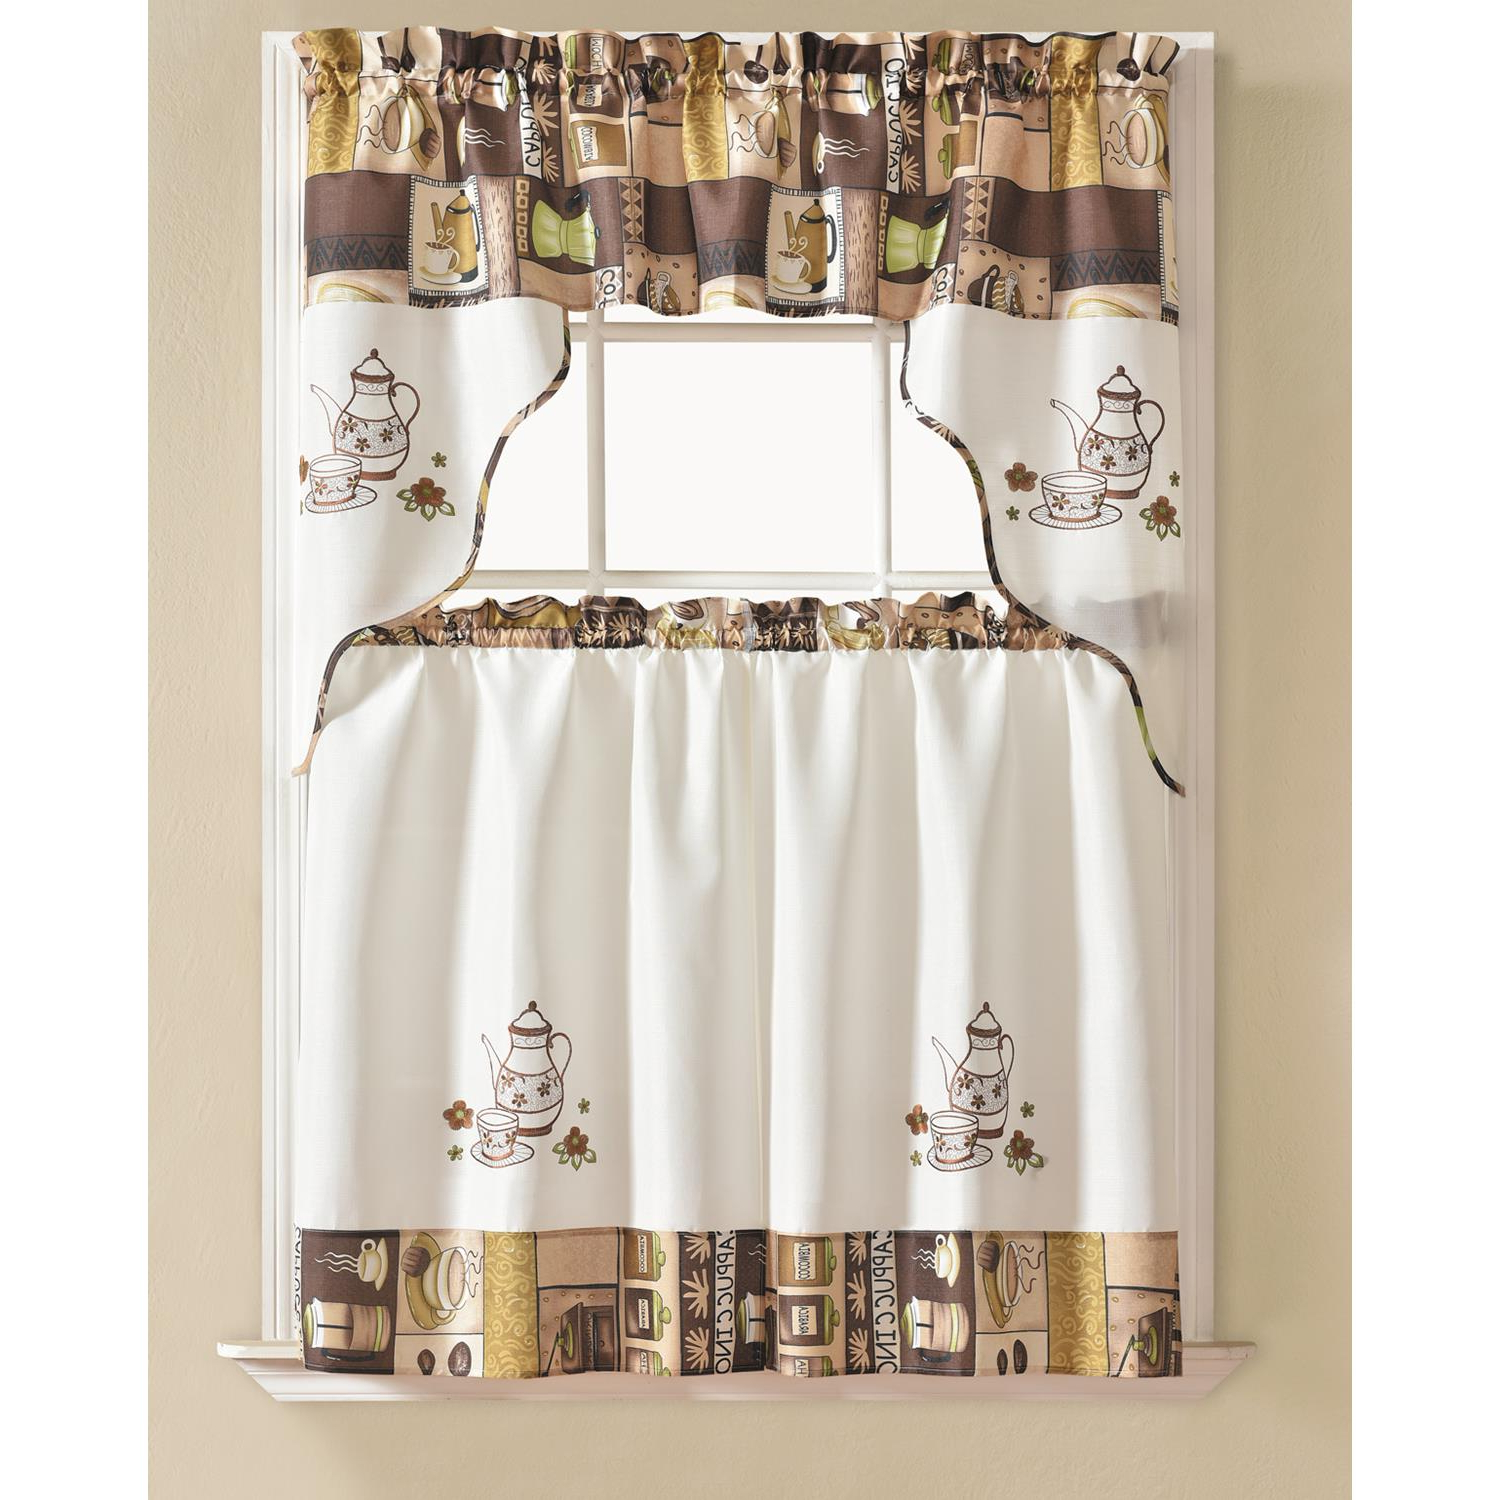 Featured Photo of Coffee Embroidered Kitchen Curtain Tier Sets